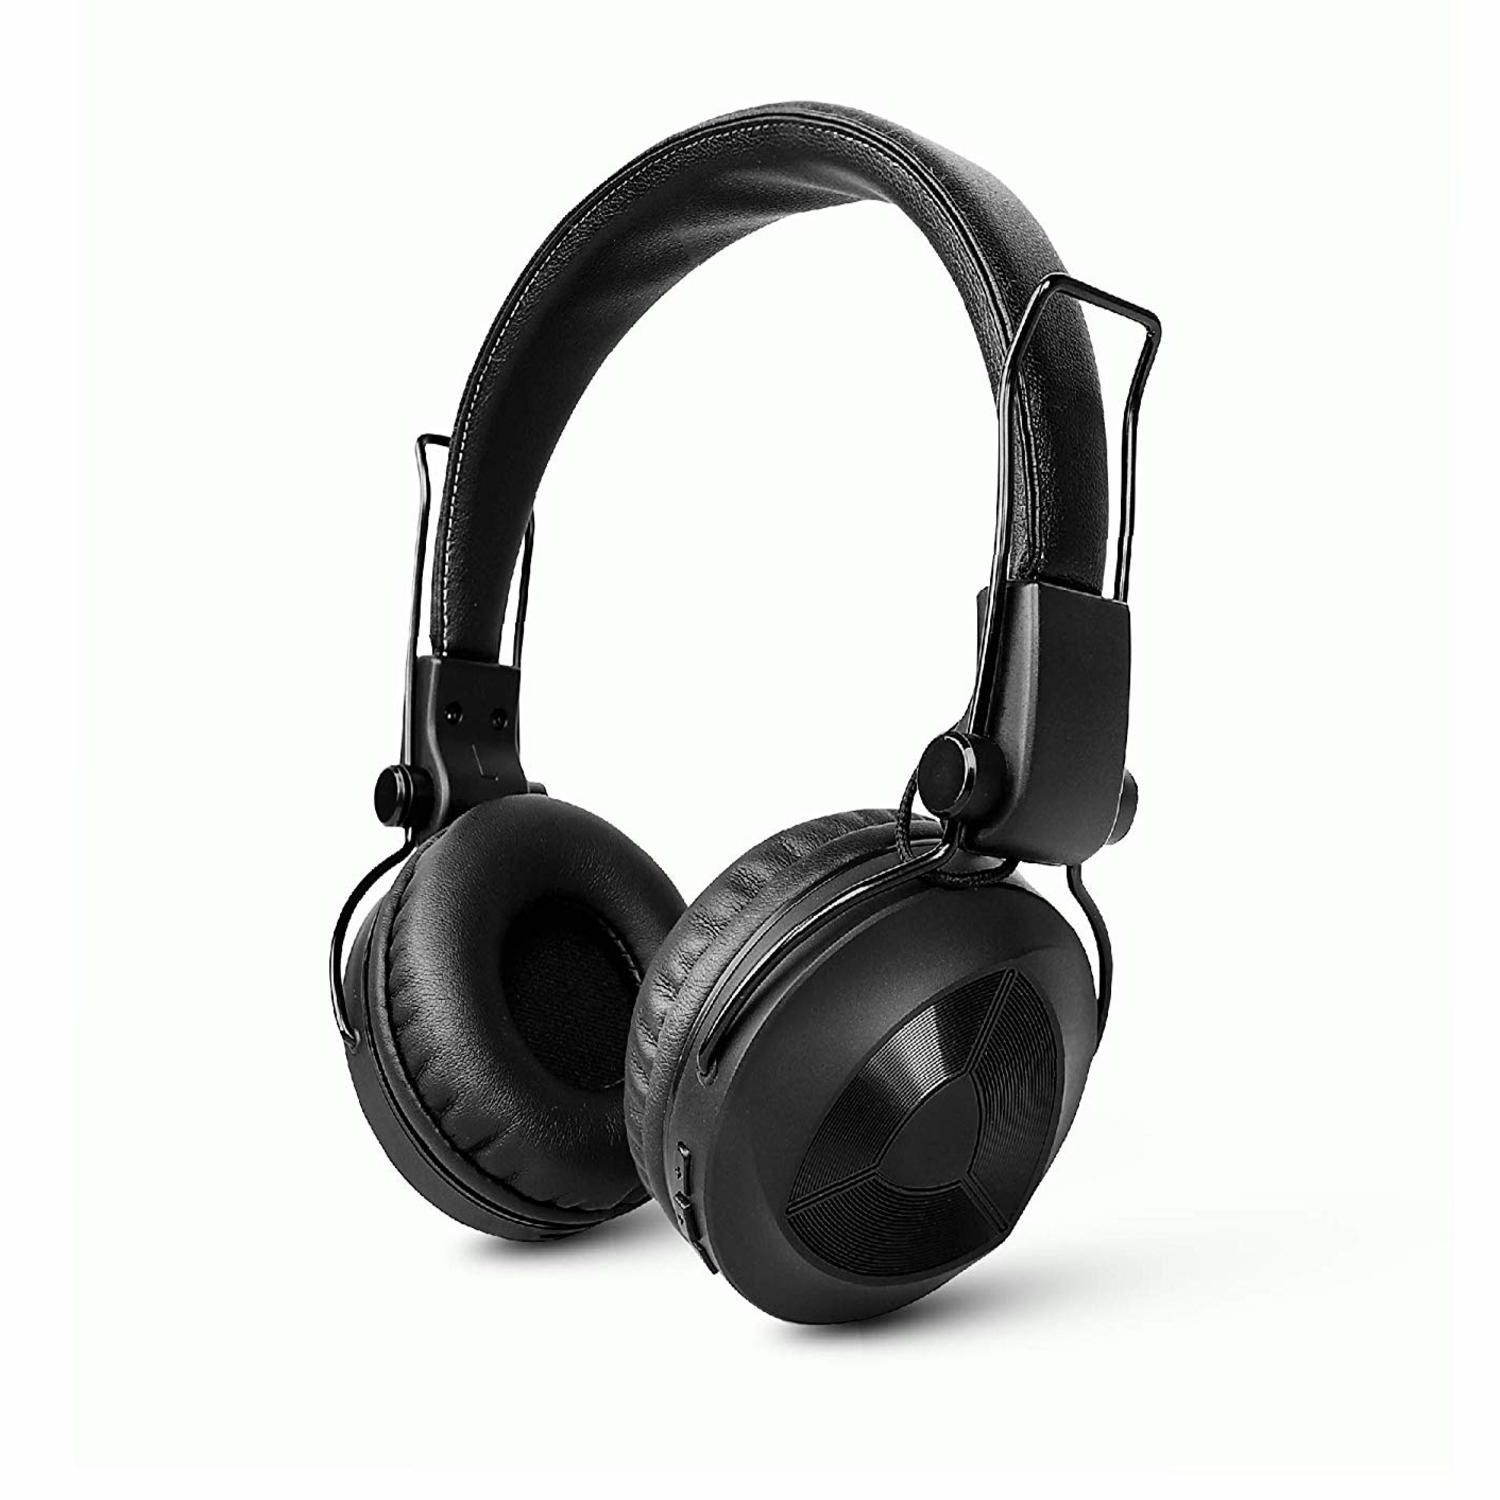 Blaupunkt Launches wireless headphone BH01 with Bluetooth 5.0 in India